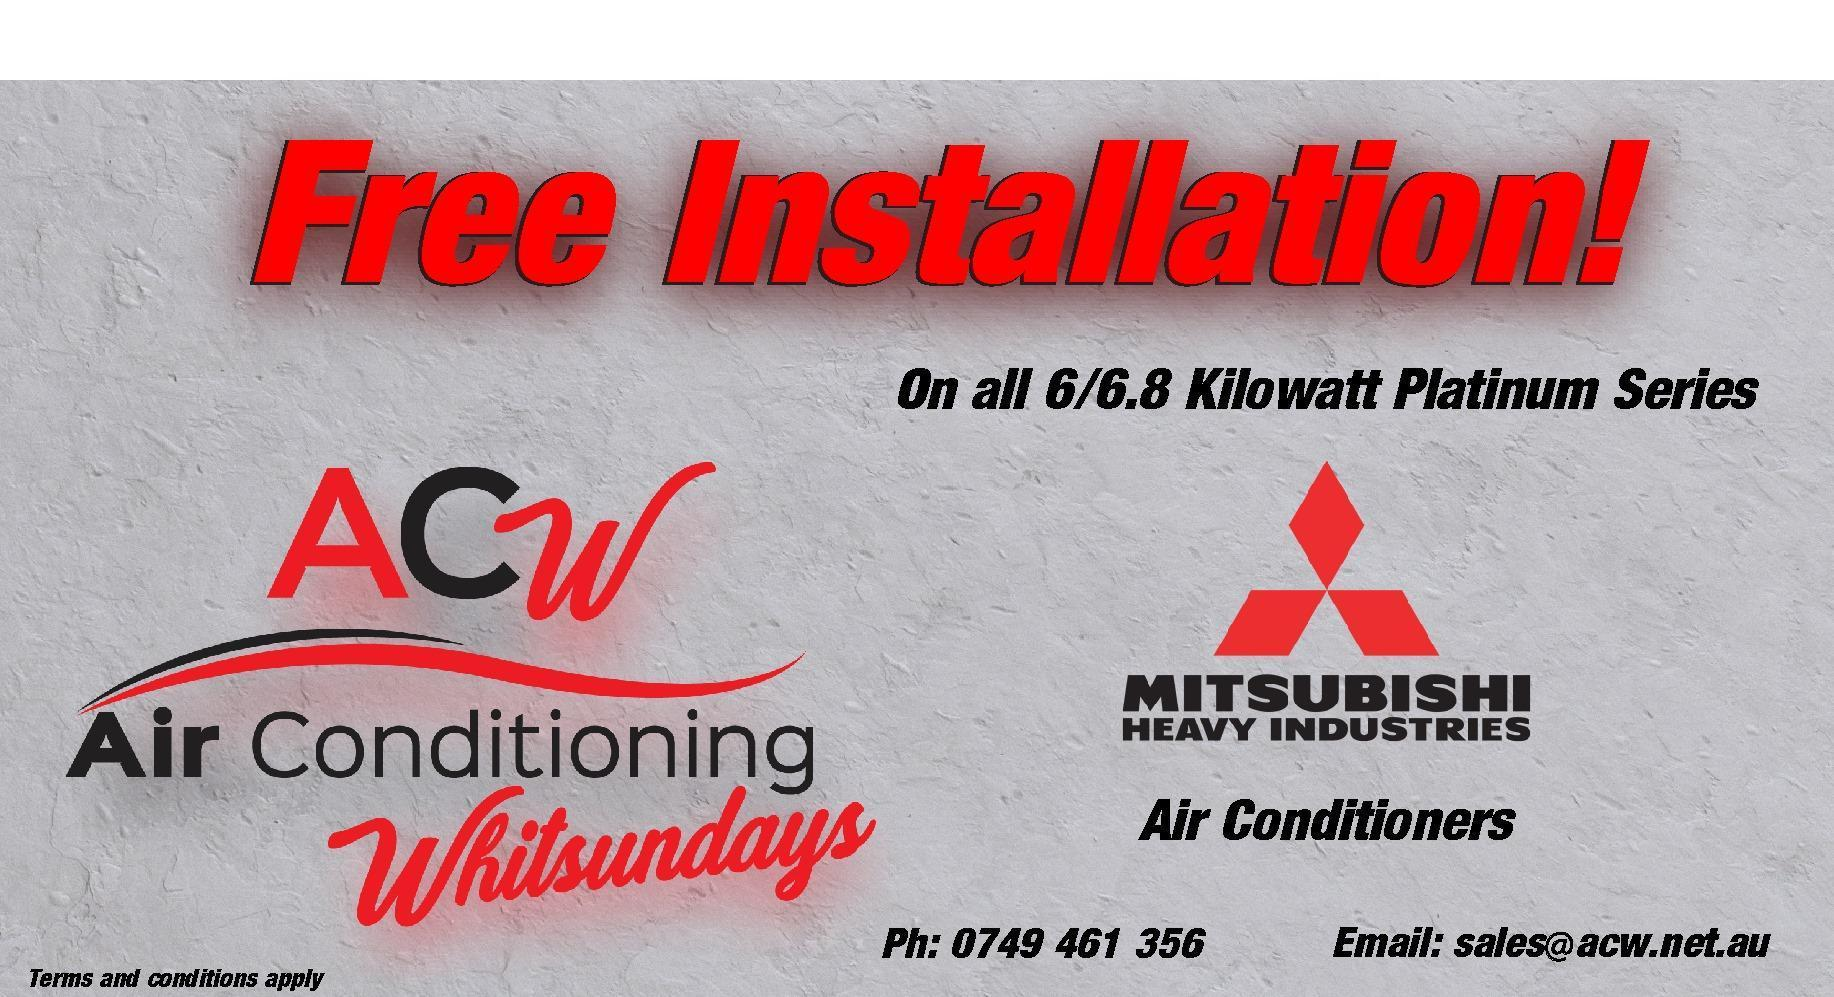 Air conditioning FREE INSTALLATION for airlie beach, cannonvale, proserpine, and whitsundays